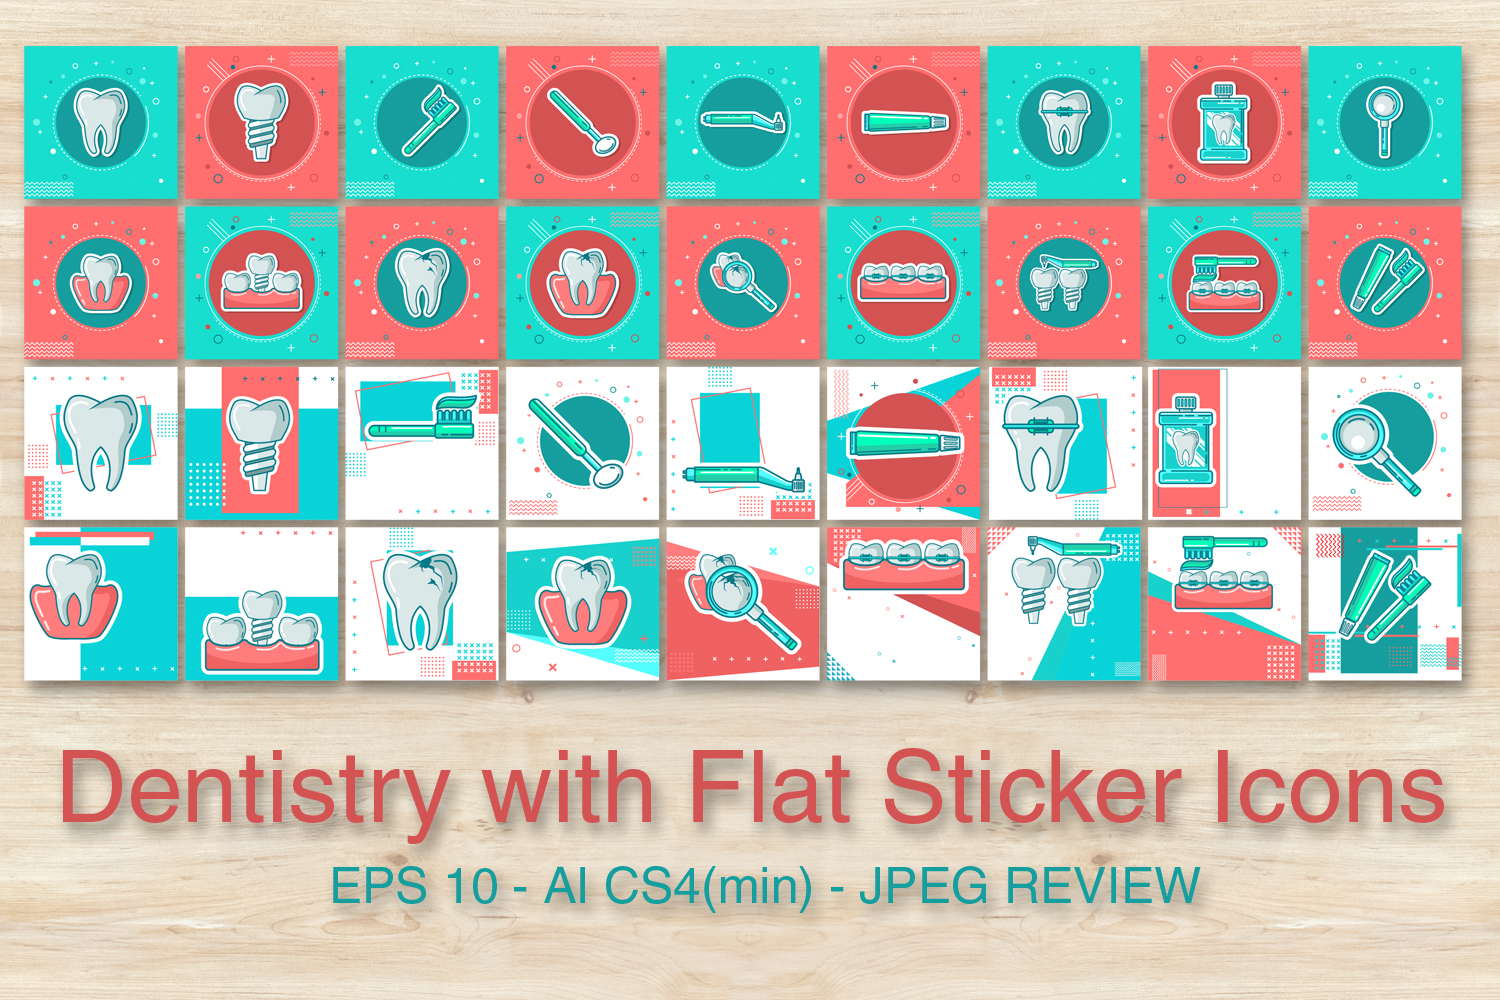 Dentistry with Flat Sticker Icons example image 2